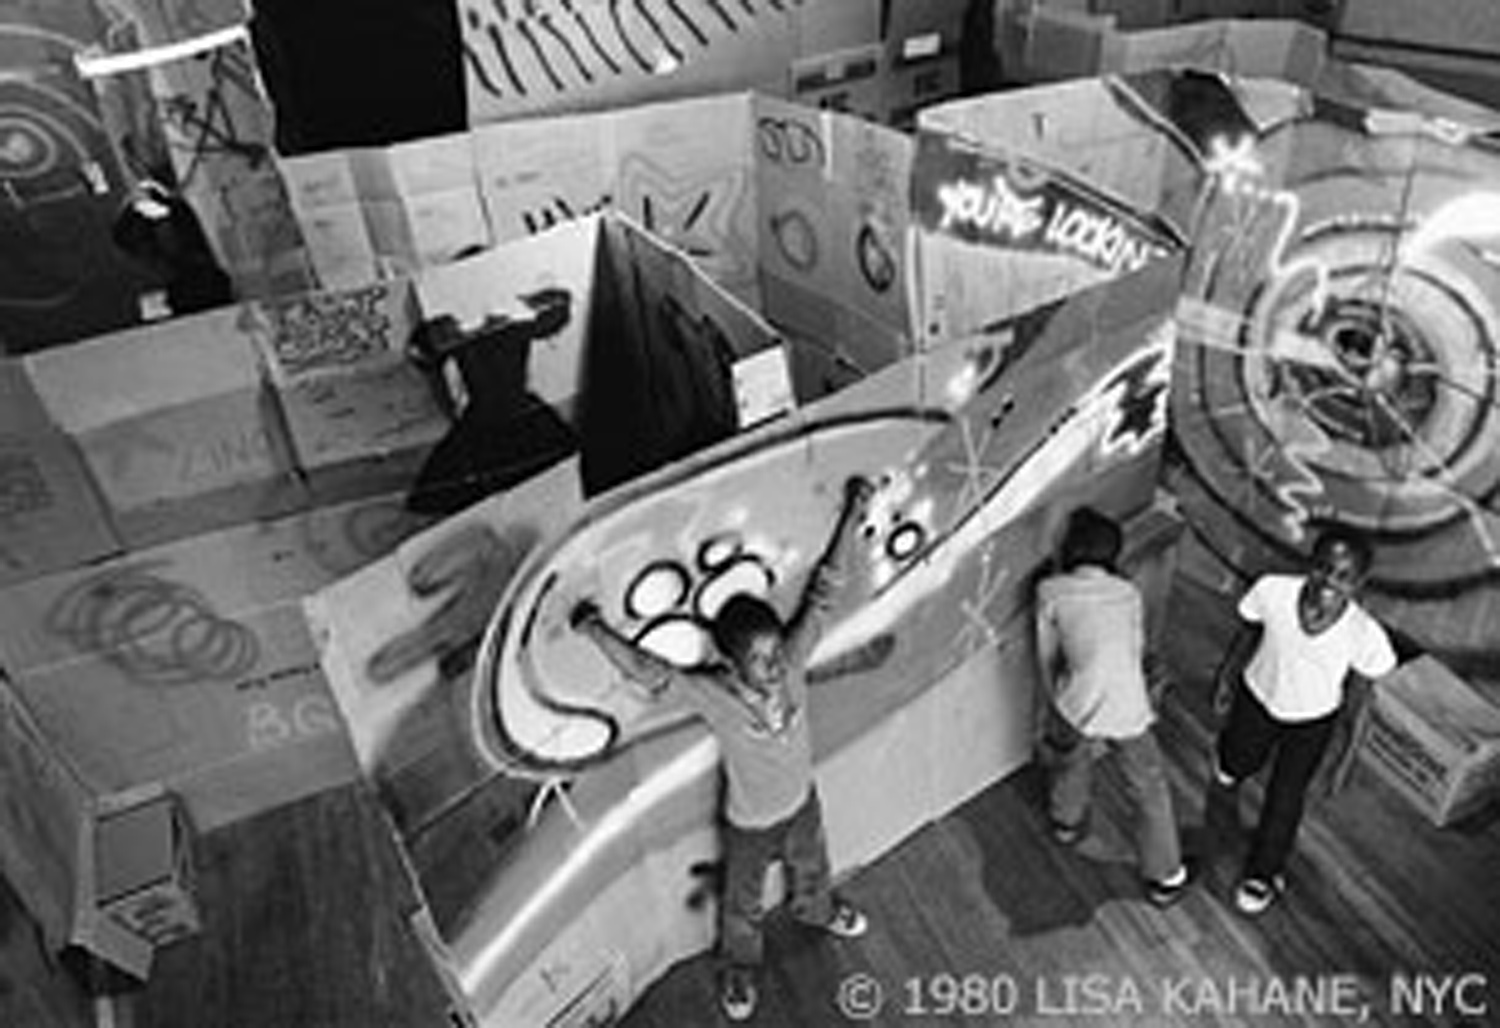 Graffiti opening in 1980. Photo by Lisa Kahane